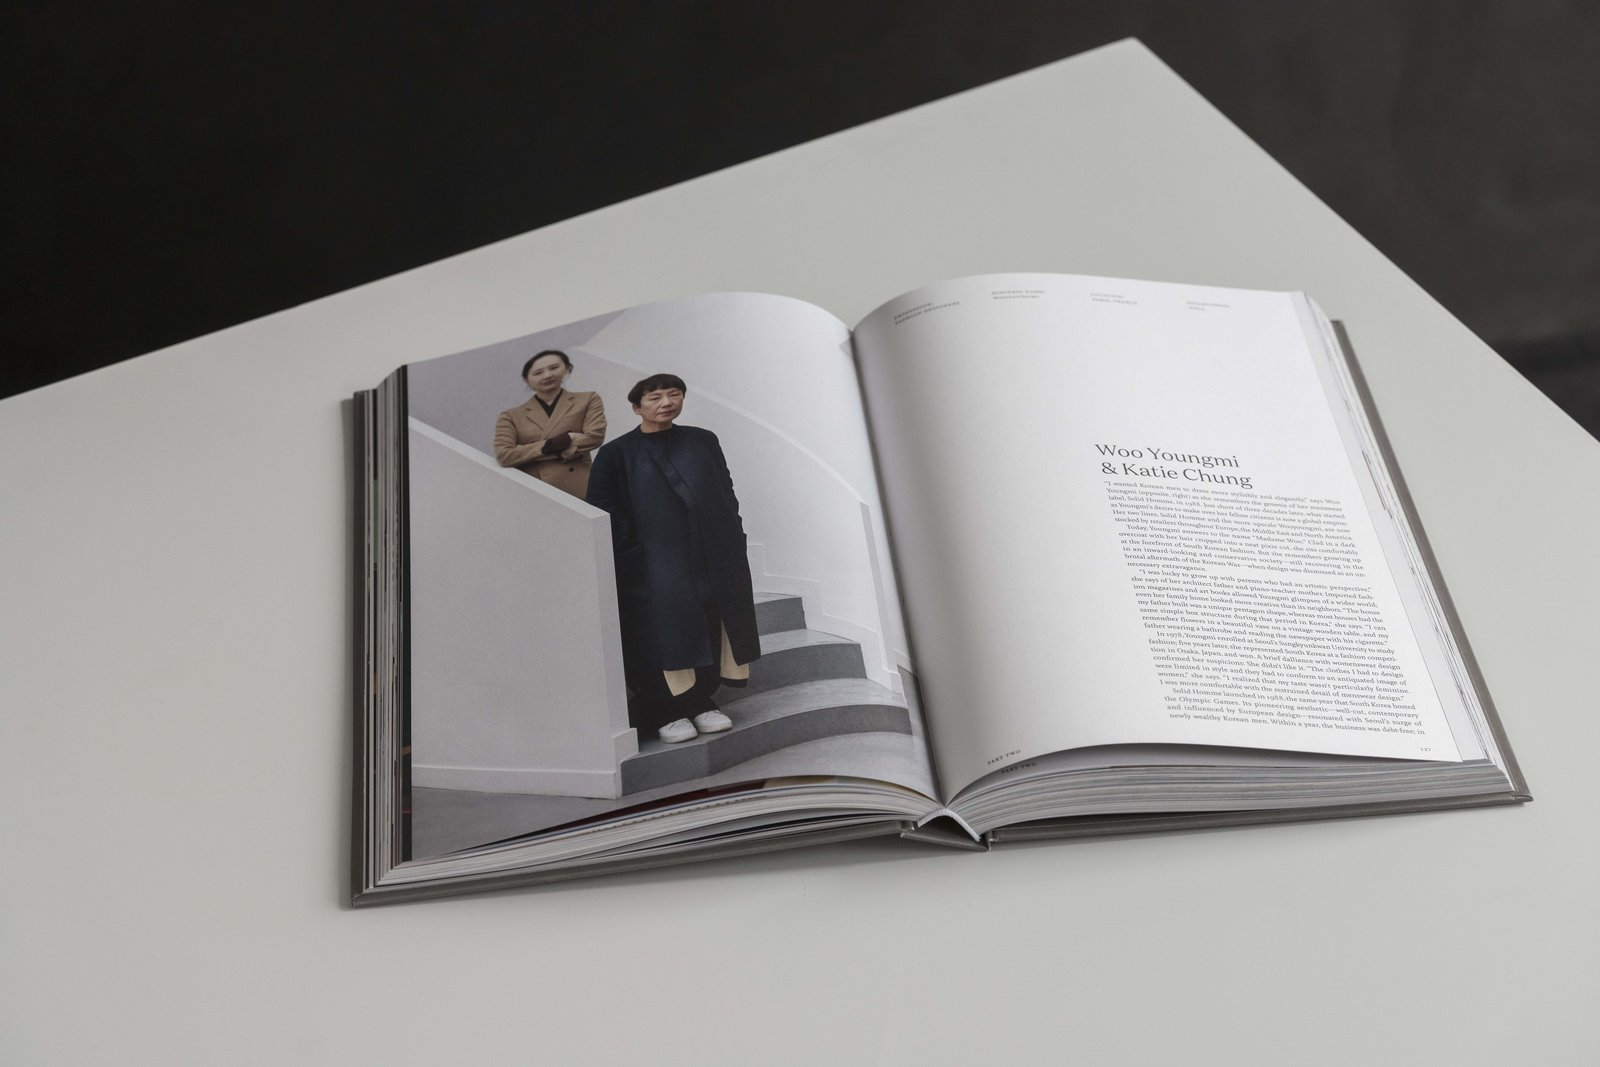 Fashion designers and business partners, Woo Youngmi and Katie Chung  Photo 5 of 10 in Meet 40 of the World's Most Creative Entrepreneurs With Kinfolk's New Book